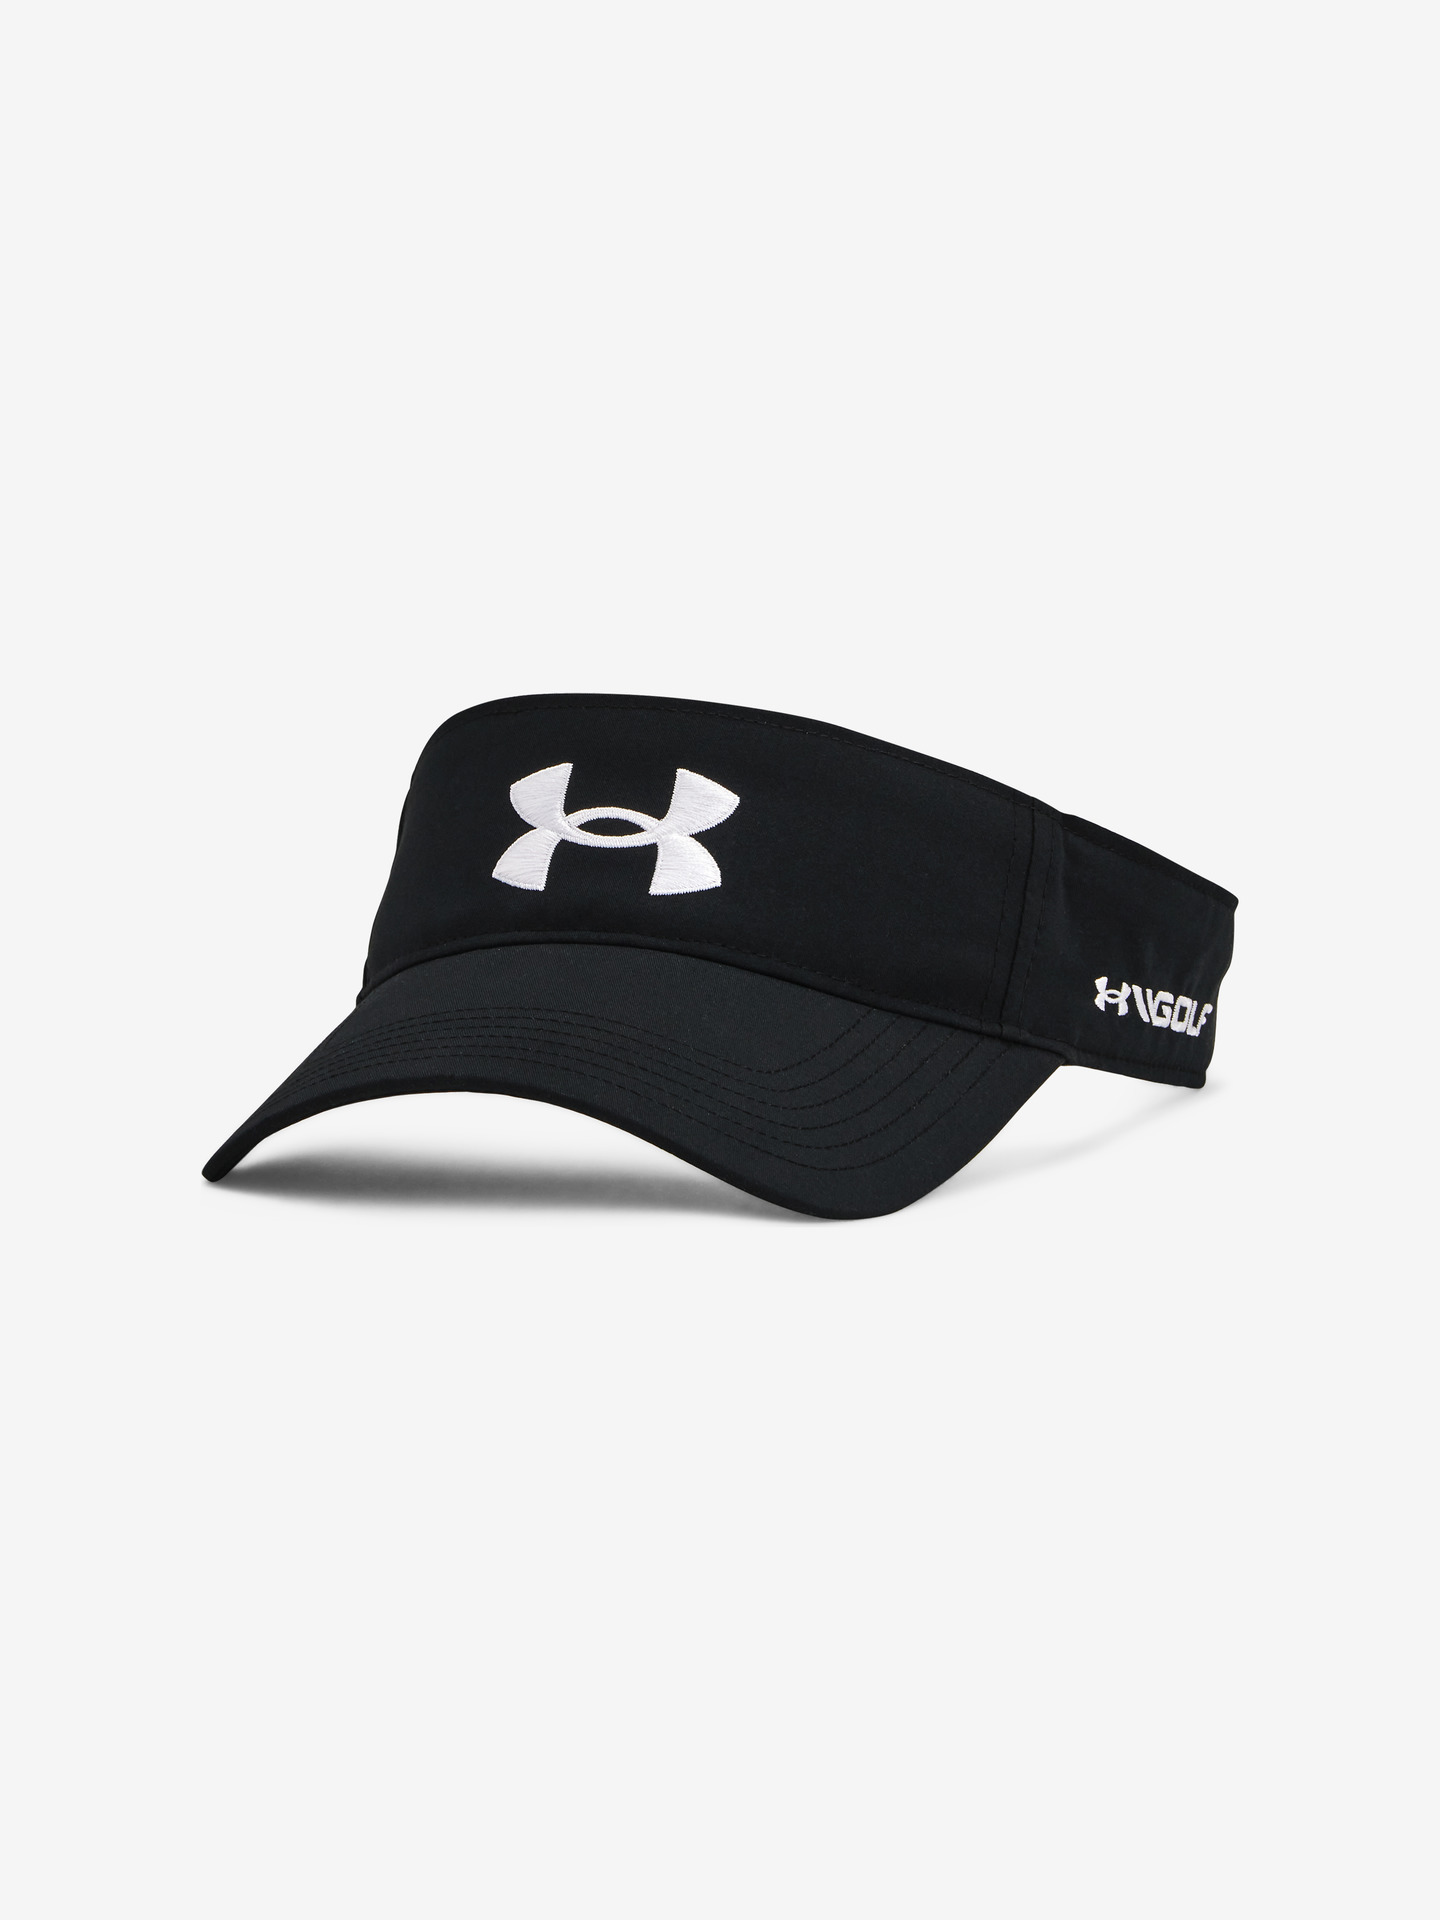 Golf96 Visor Kšiltovka Under Armour Čierna